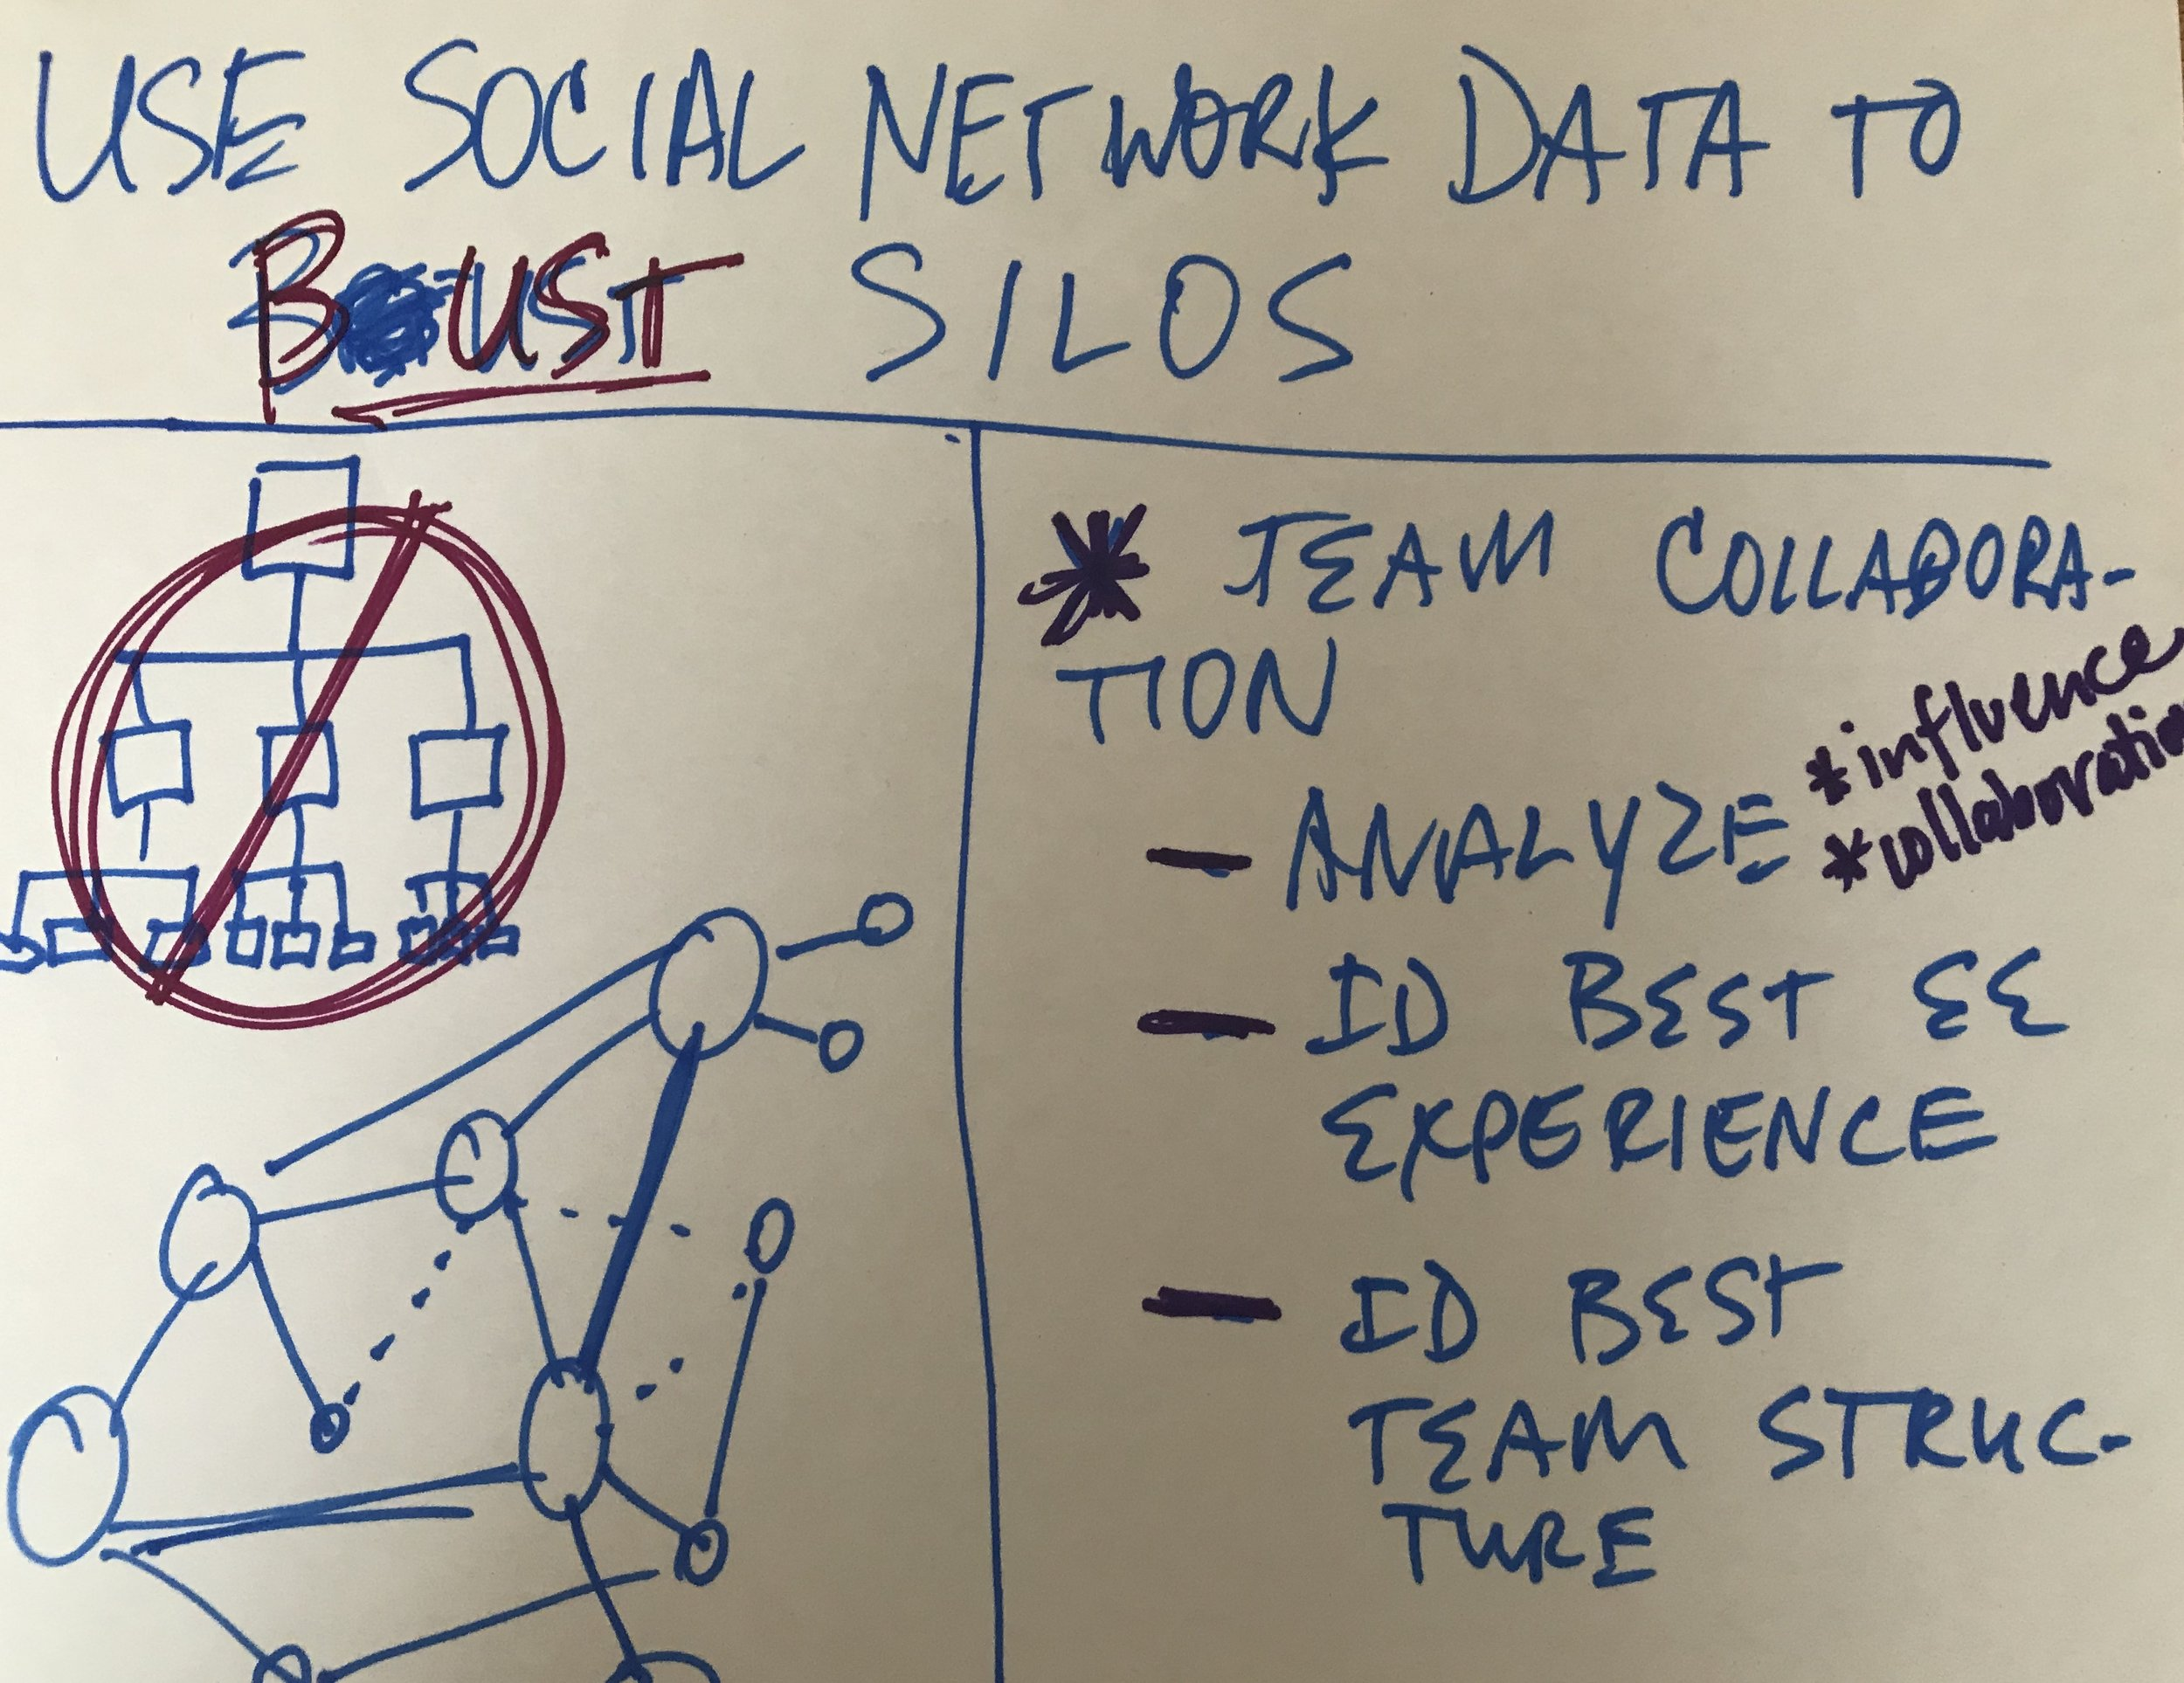 Use Social Network Data To Bust Siloes